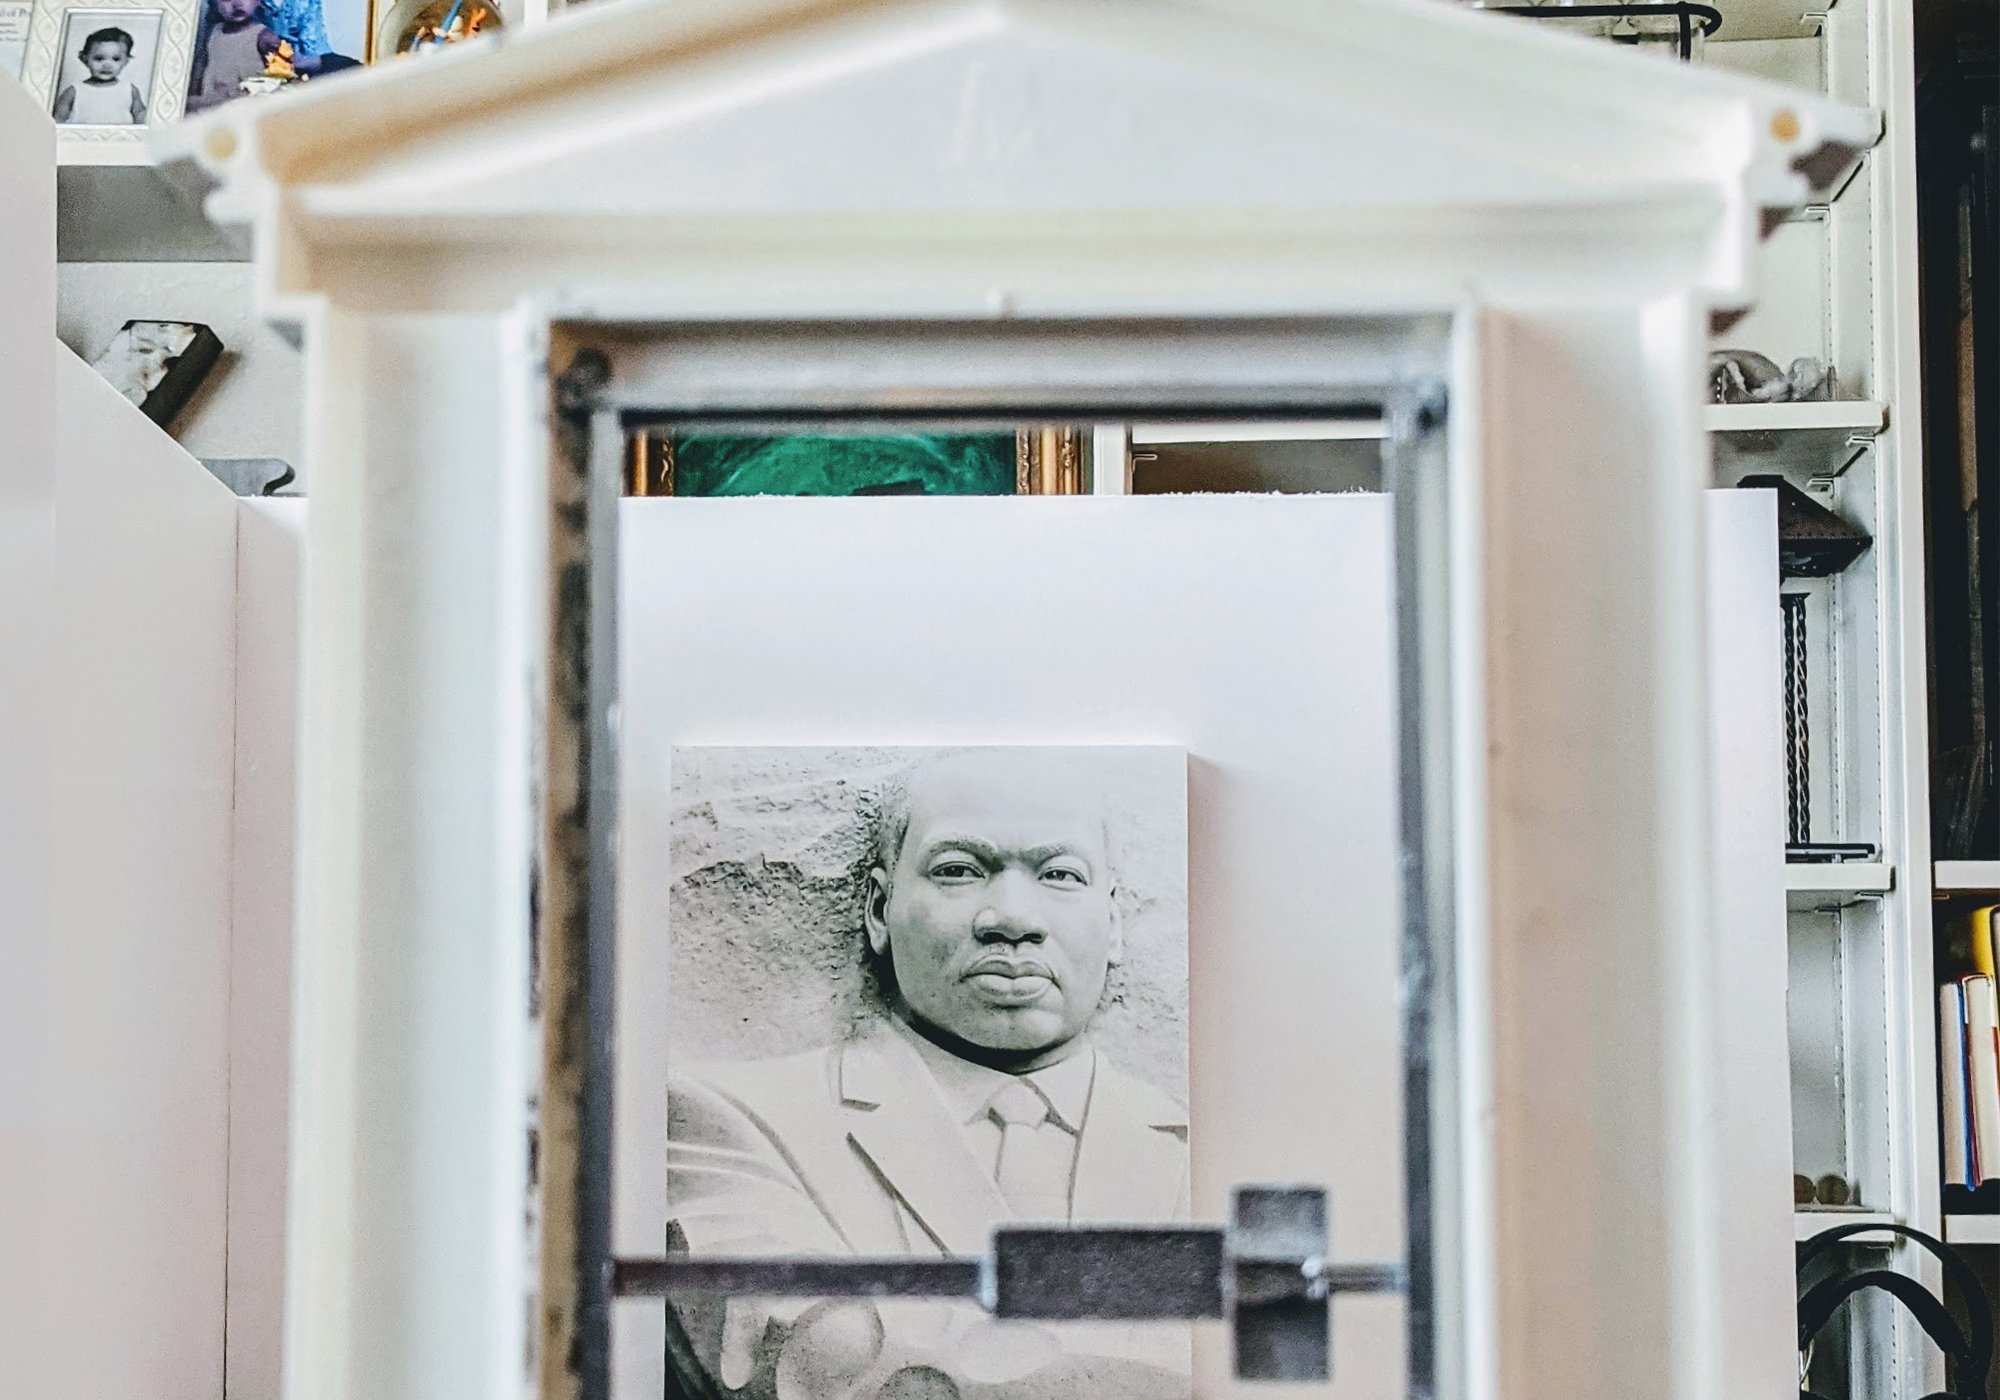 Still Dreaming: A tribute to Dr. Martin Luther King, Jr.